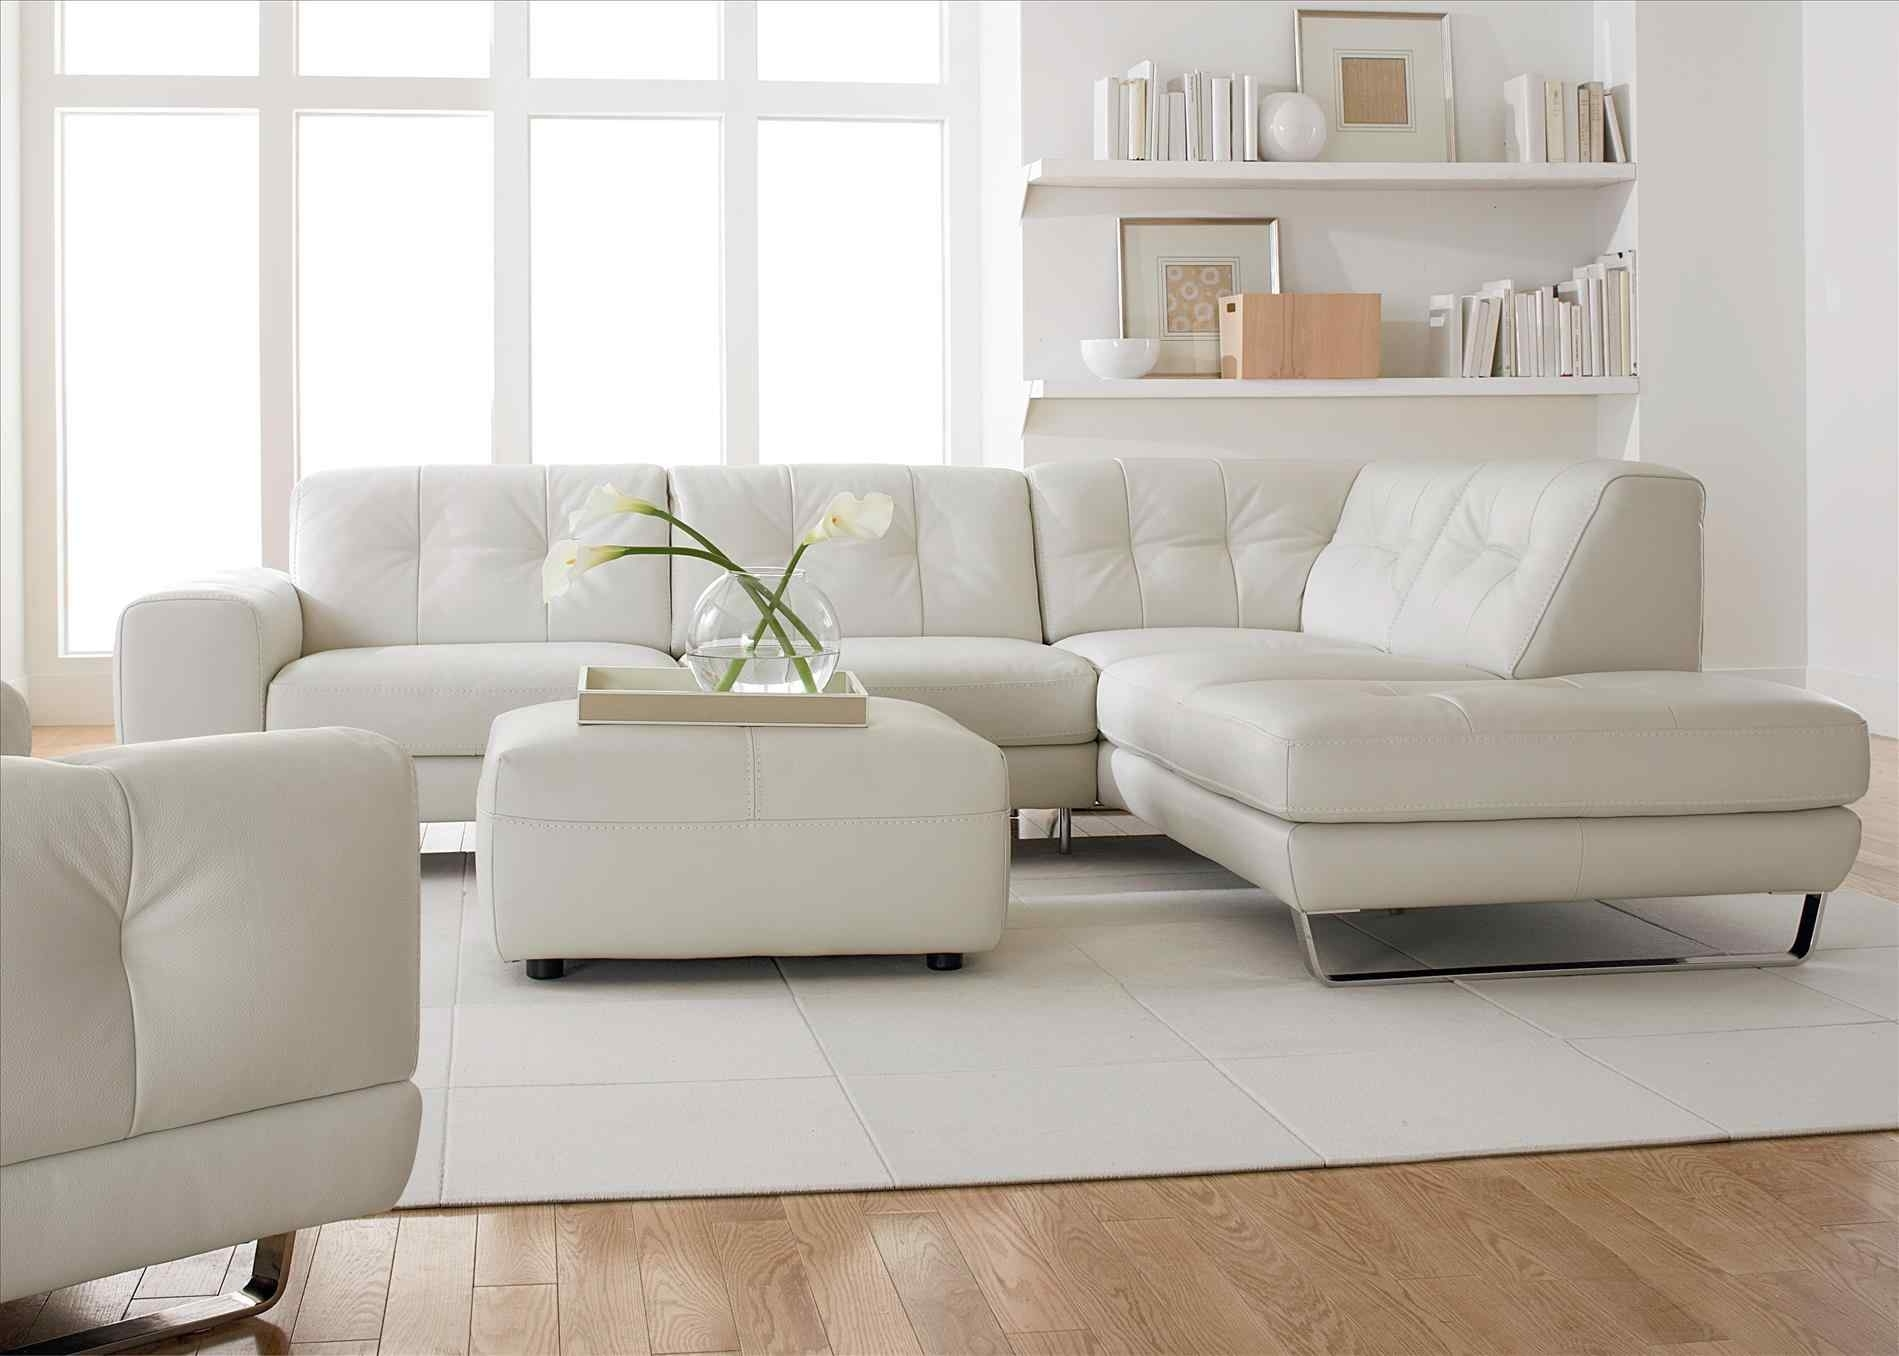 Off White Leather Sofa And Loveseat – Nrhcares Intended For Off White Leather Sofas (Image 7 of 10)